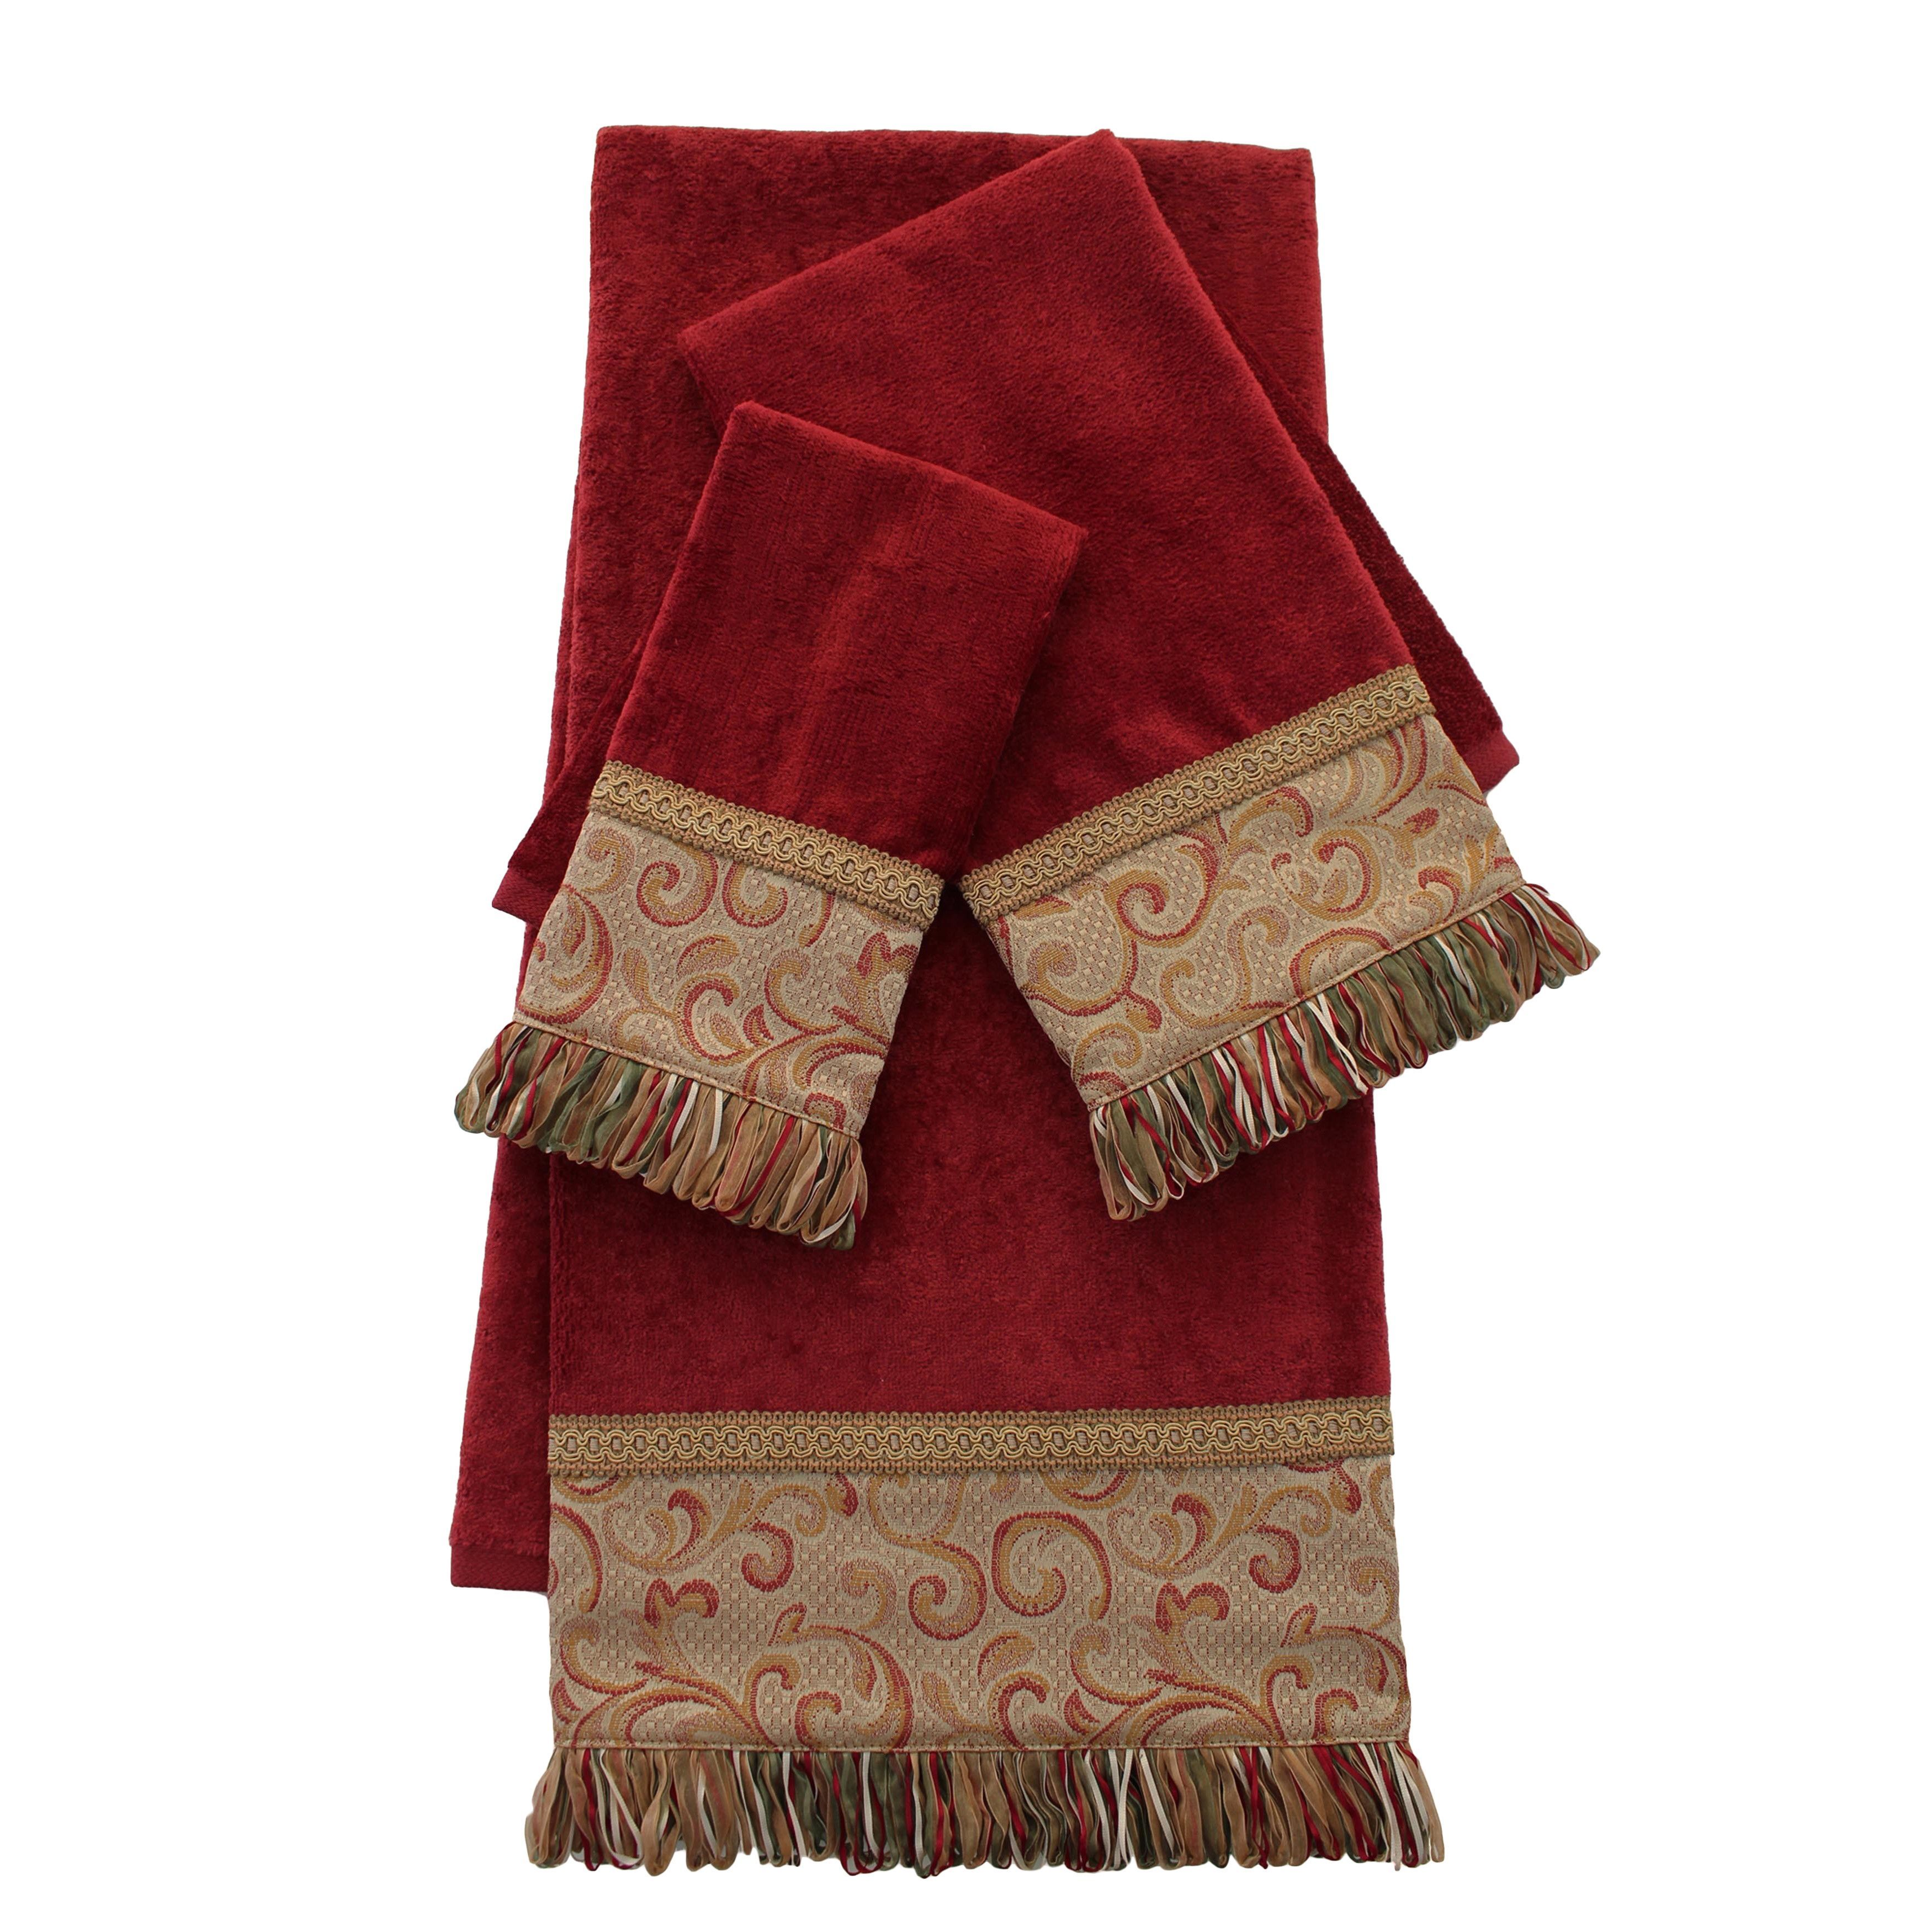 Decorative Bath Towel Sets These Fashionable Towels Are Great Addition To Your Bathroom Décor